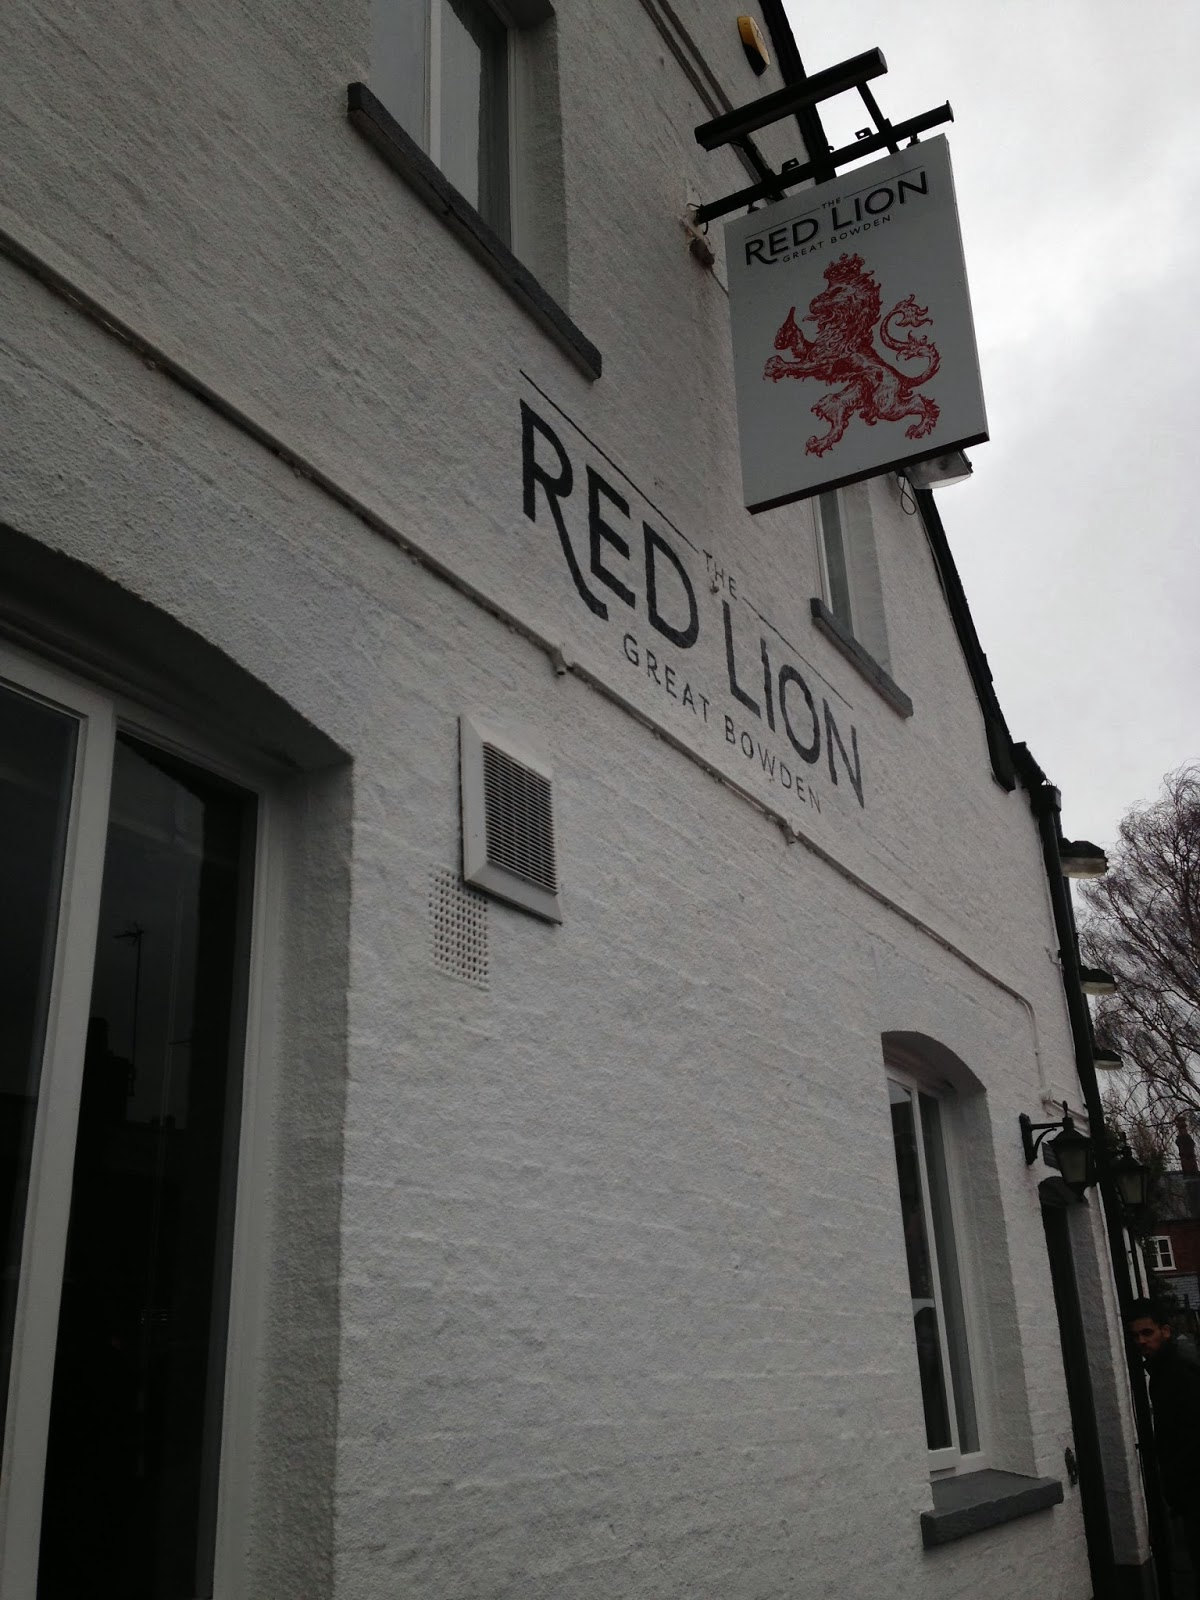 The Red Lion Hanging Sign